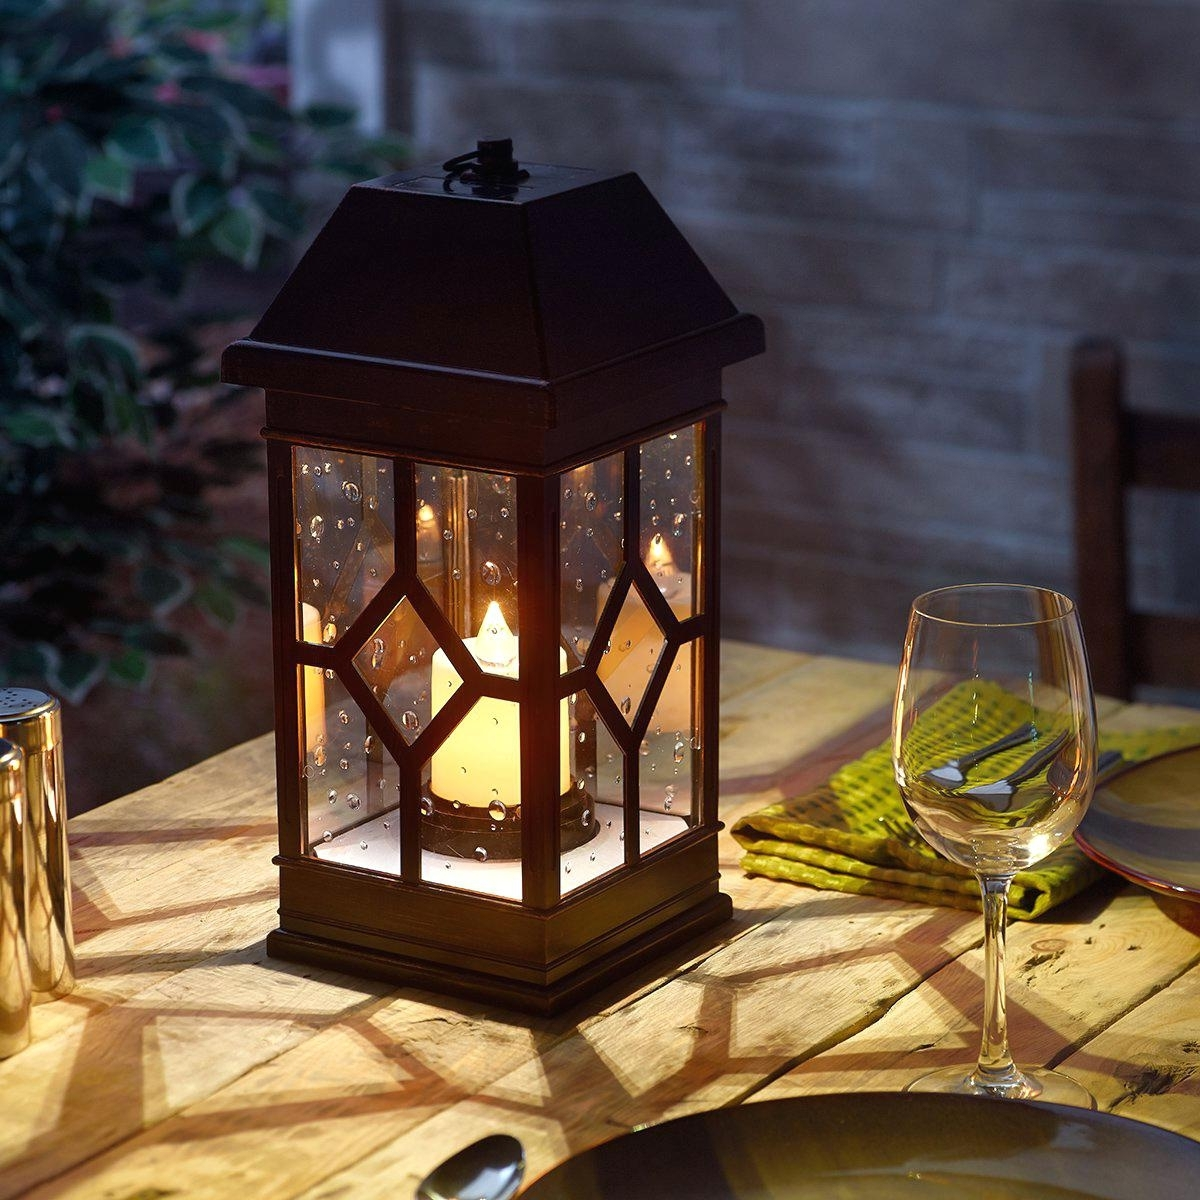 Outdoor And Garden String Lights At Wayfair Pertaining To Latest Outdoor Candle Lanterns For Patio Uk – Outdoor Designs (View 11 of 20)